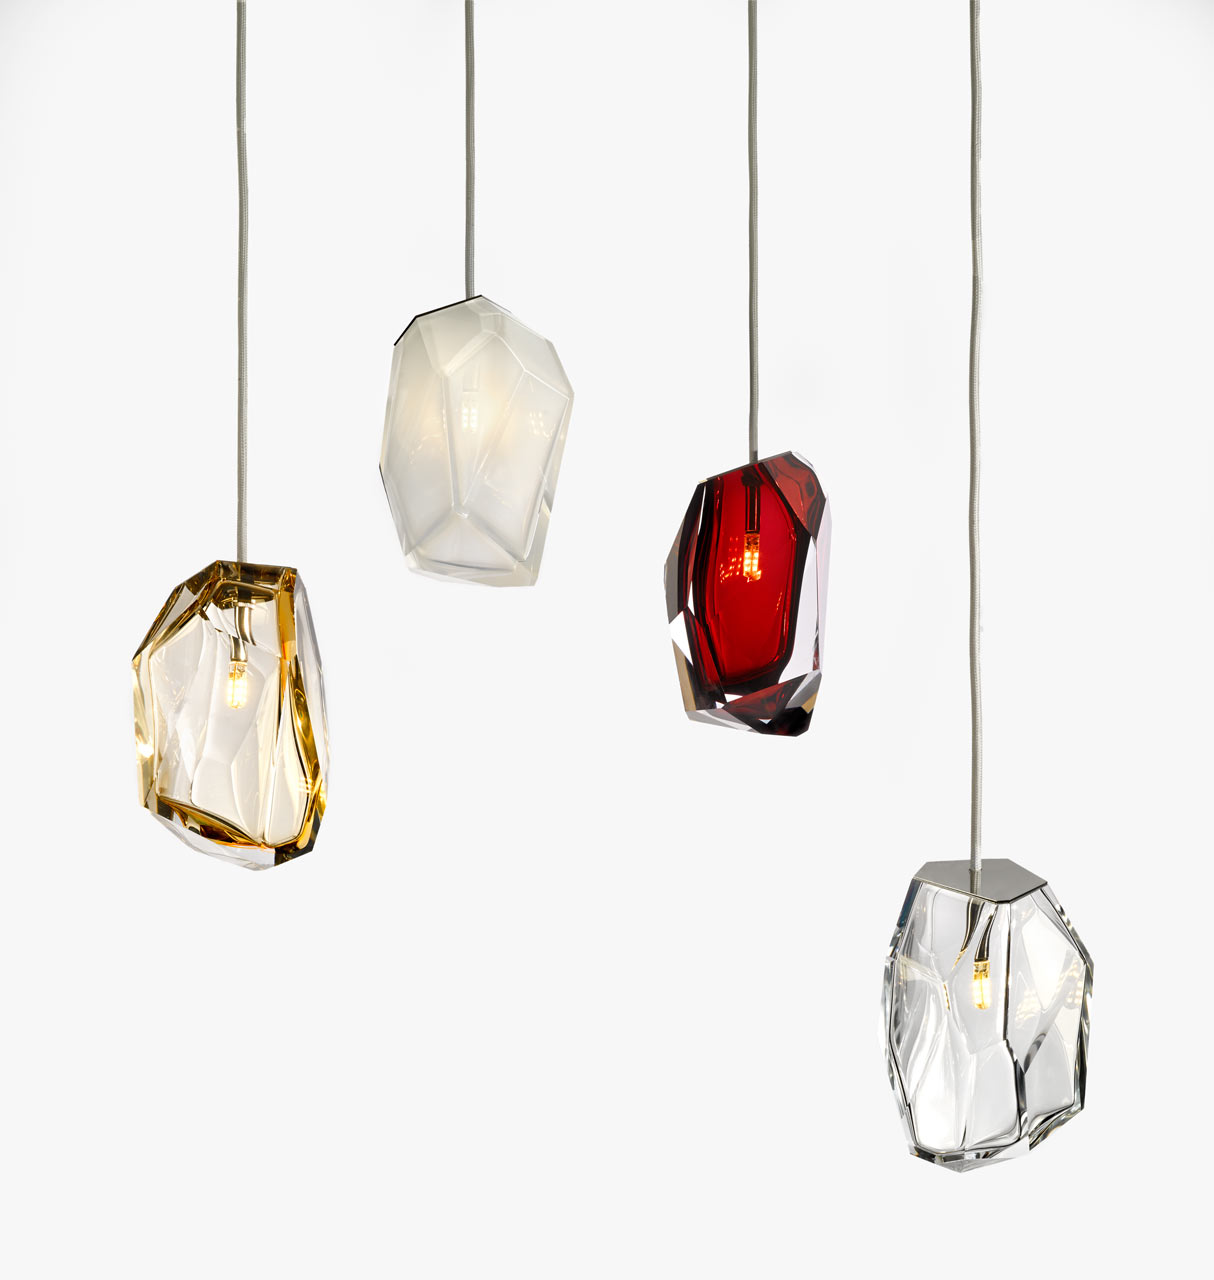 Crystal Rock Lighting by Arik Levy for Lasvit